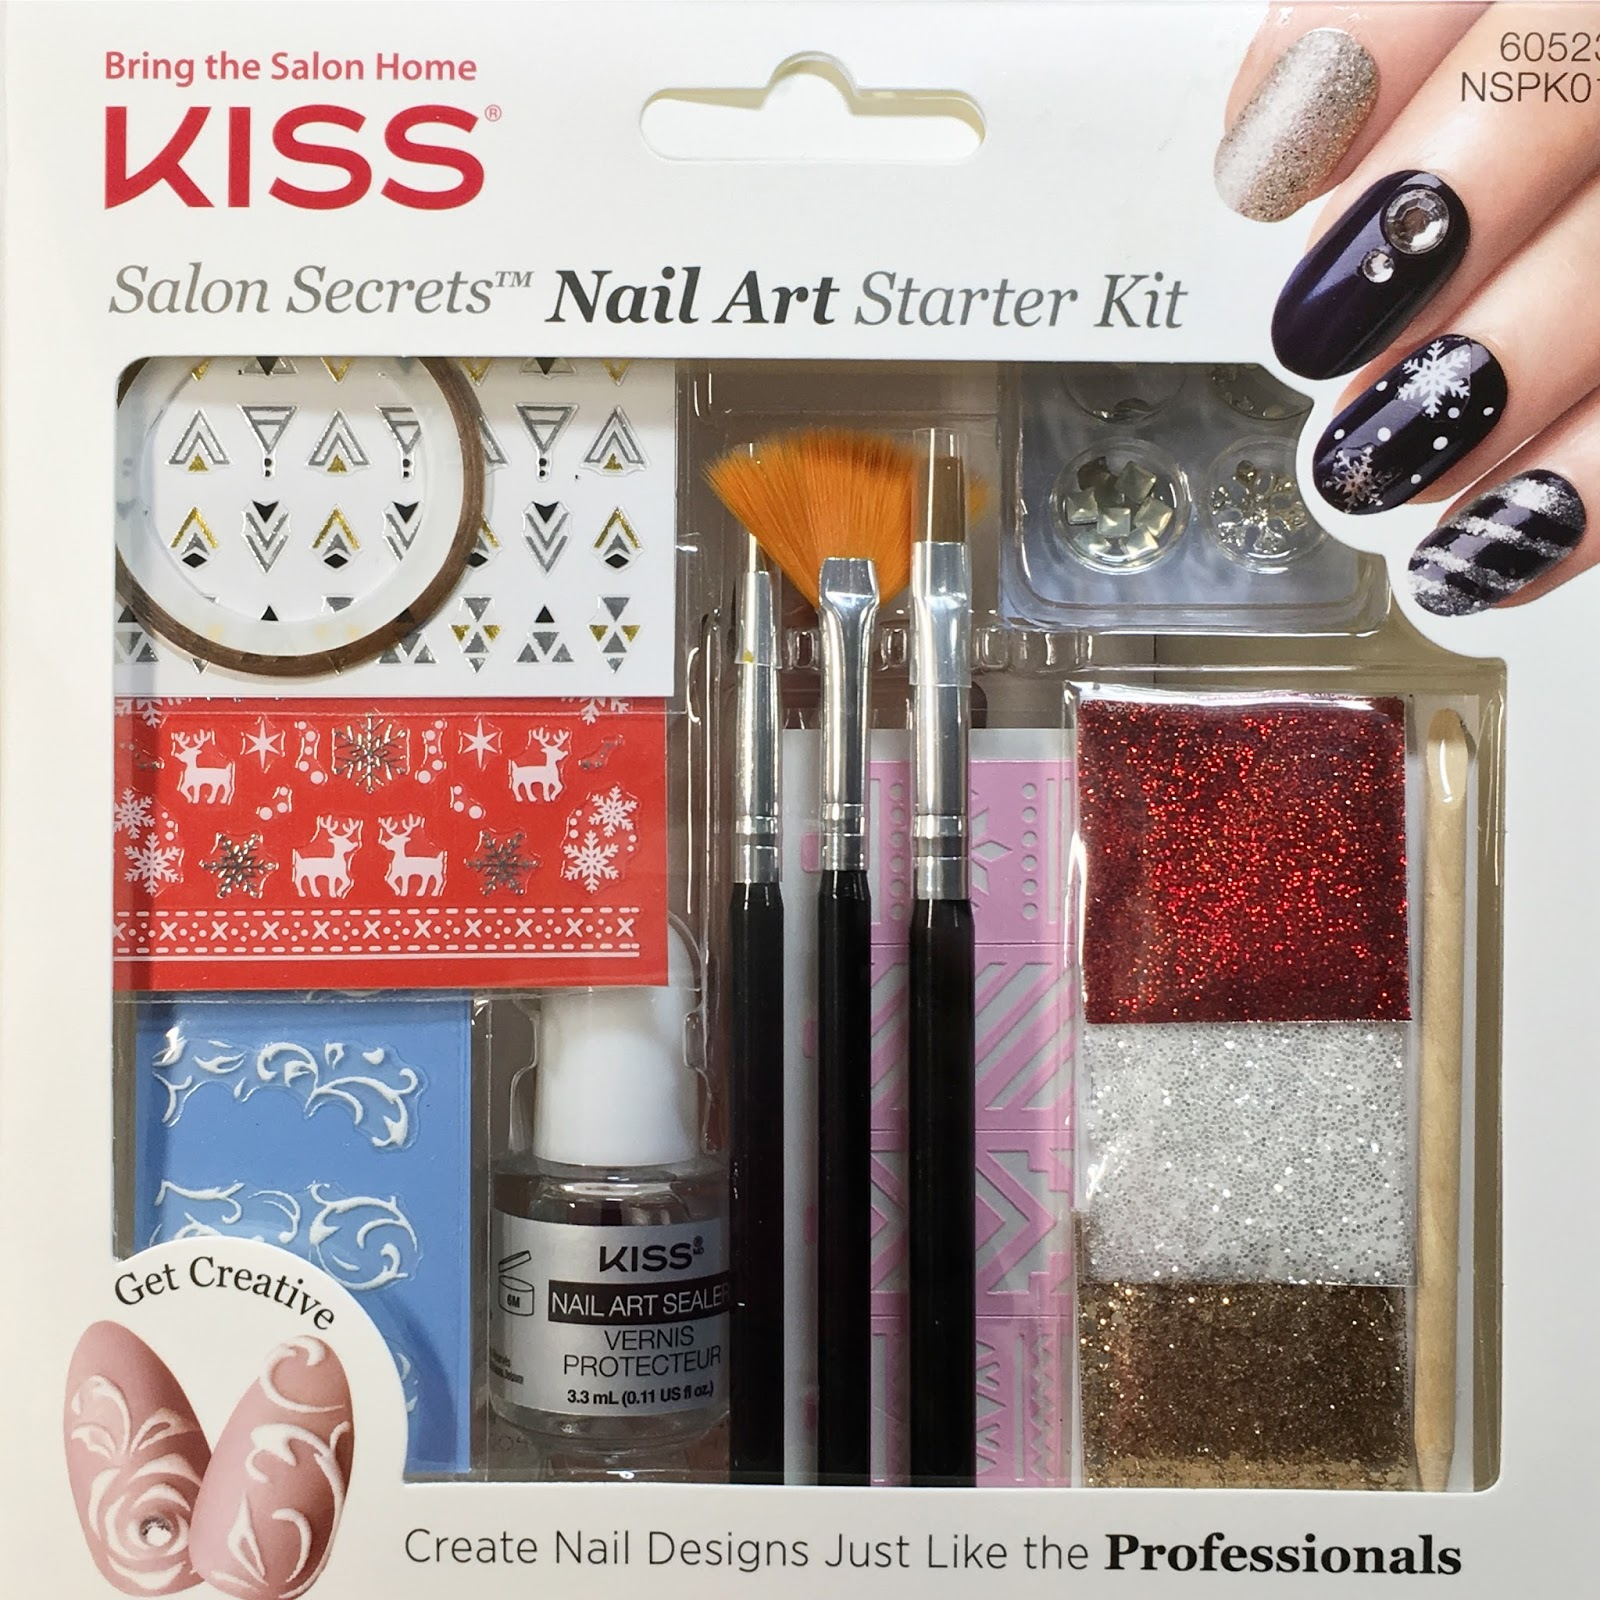 Kiss Salon Secrets Nail Art Pro Tool Kit Nsat01: Kiss Salon Secrets Nail Art Starter Kit